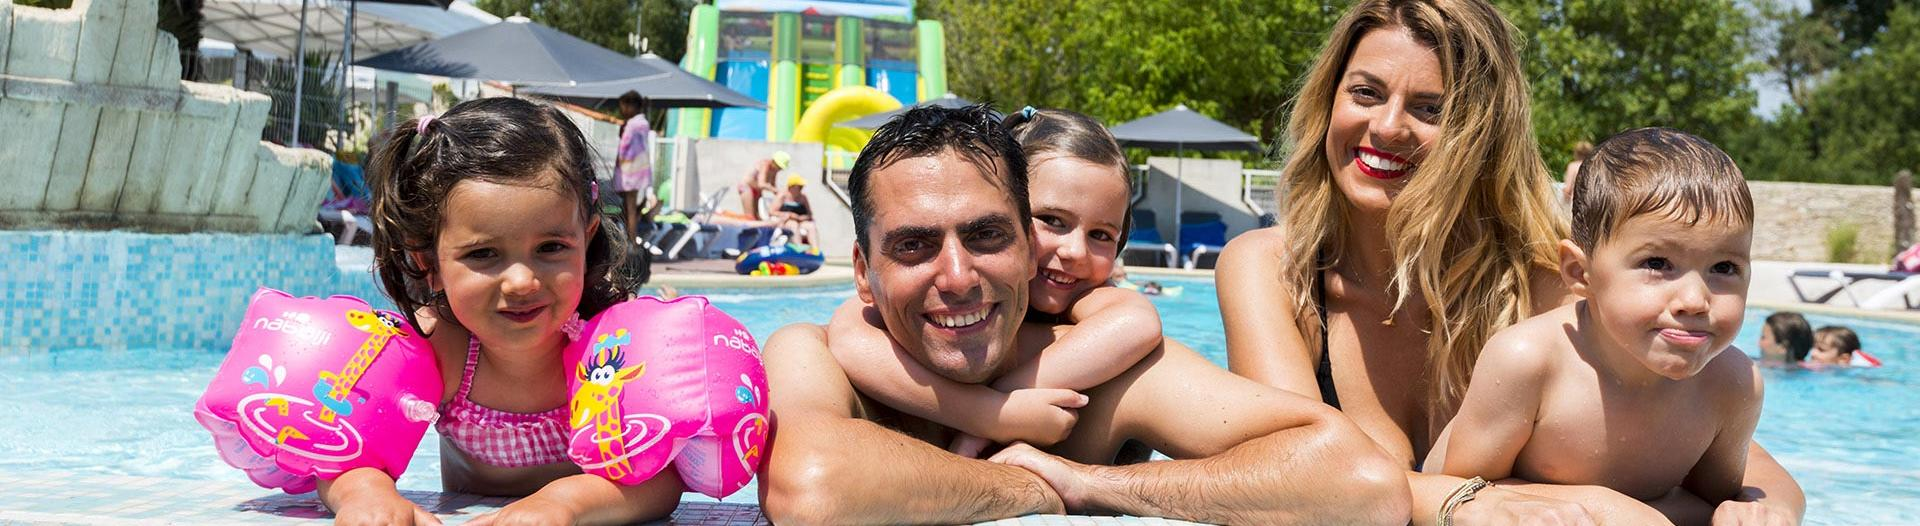 slider-camping-la-grand'metairie-vendee-piscines